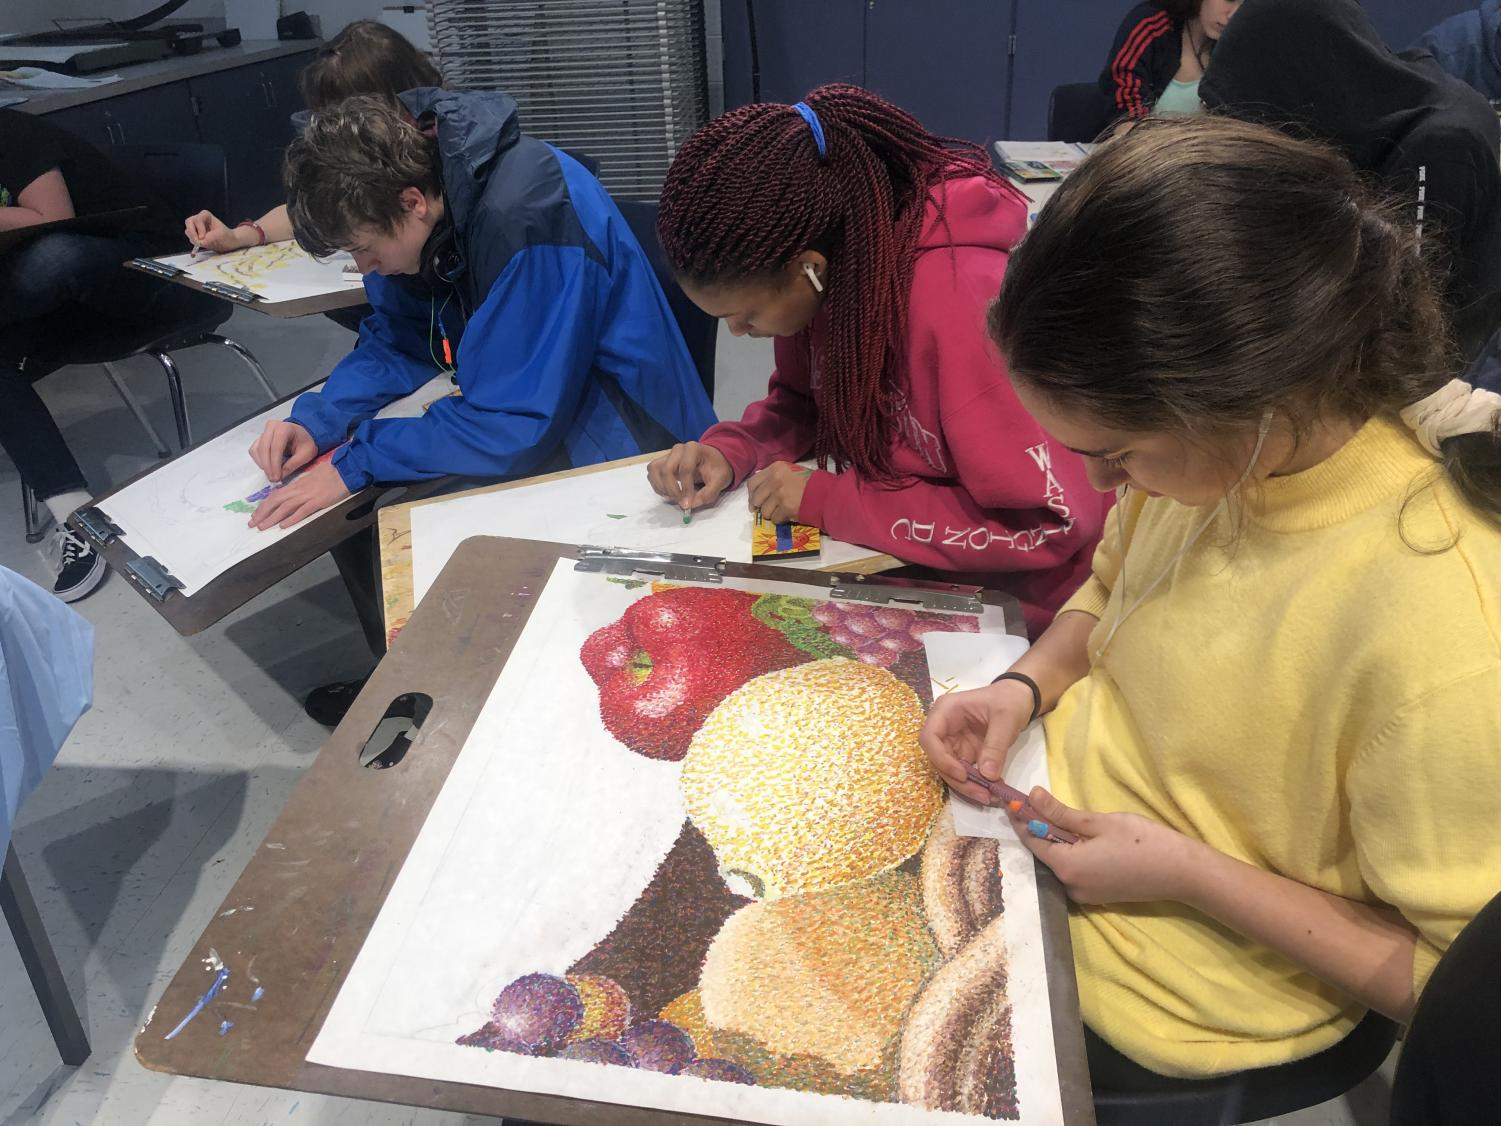 Freshman Dylan Crone, sophomore Candace Broadnax, and freshman Lauren Baptiste draw still lifes in their art class.